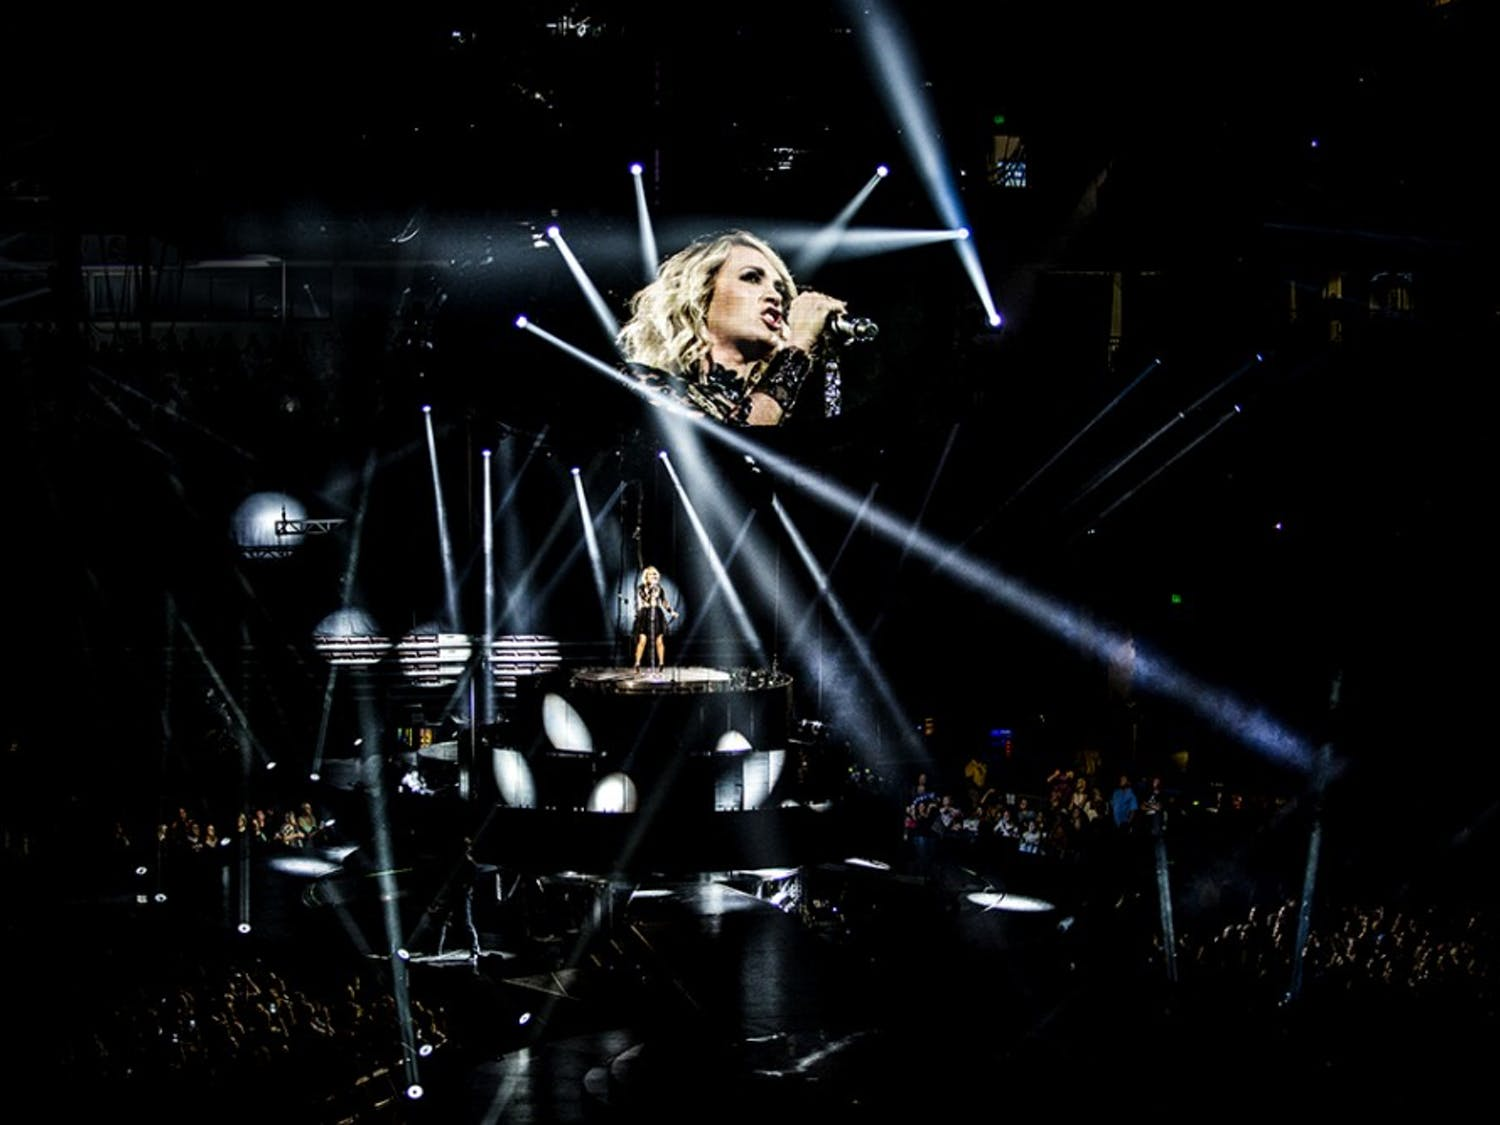 Carrie Underwood performed old classics as well as newer material to a large crowd at the Colonial Life Arena.